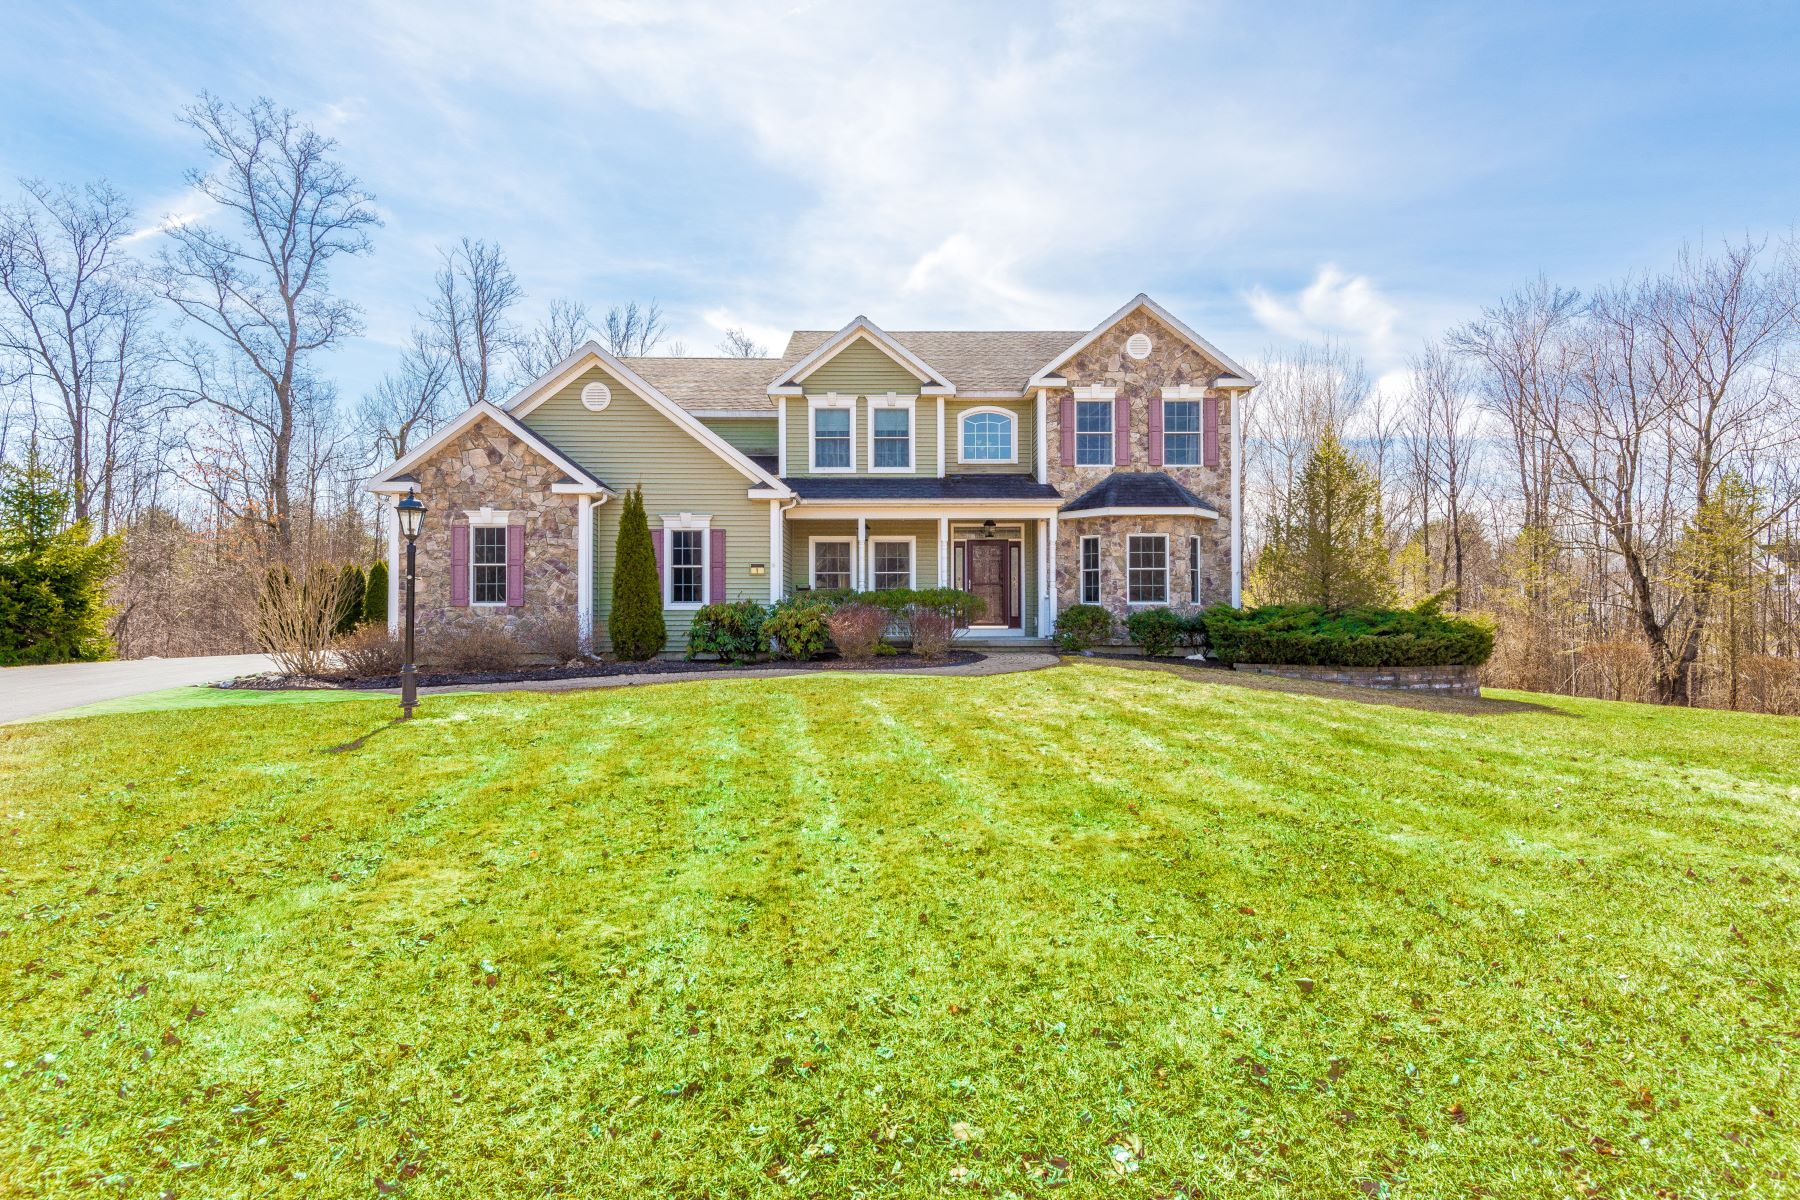 Single Family Homes for Active at Clifton Park Colonial 1 Callaway Court Clifton Park, New York 12019 United States